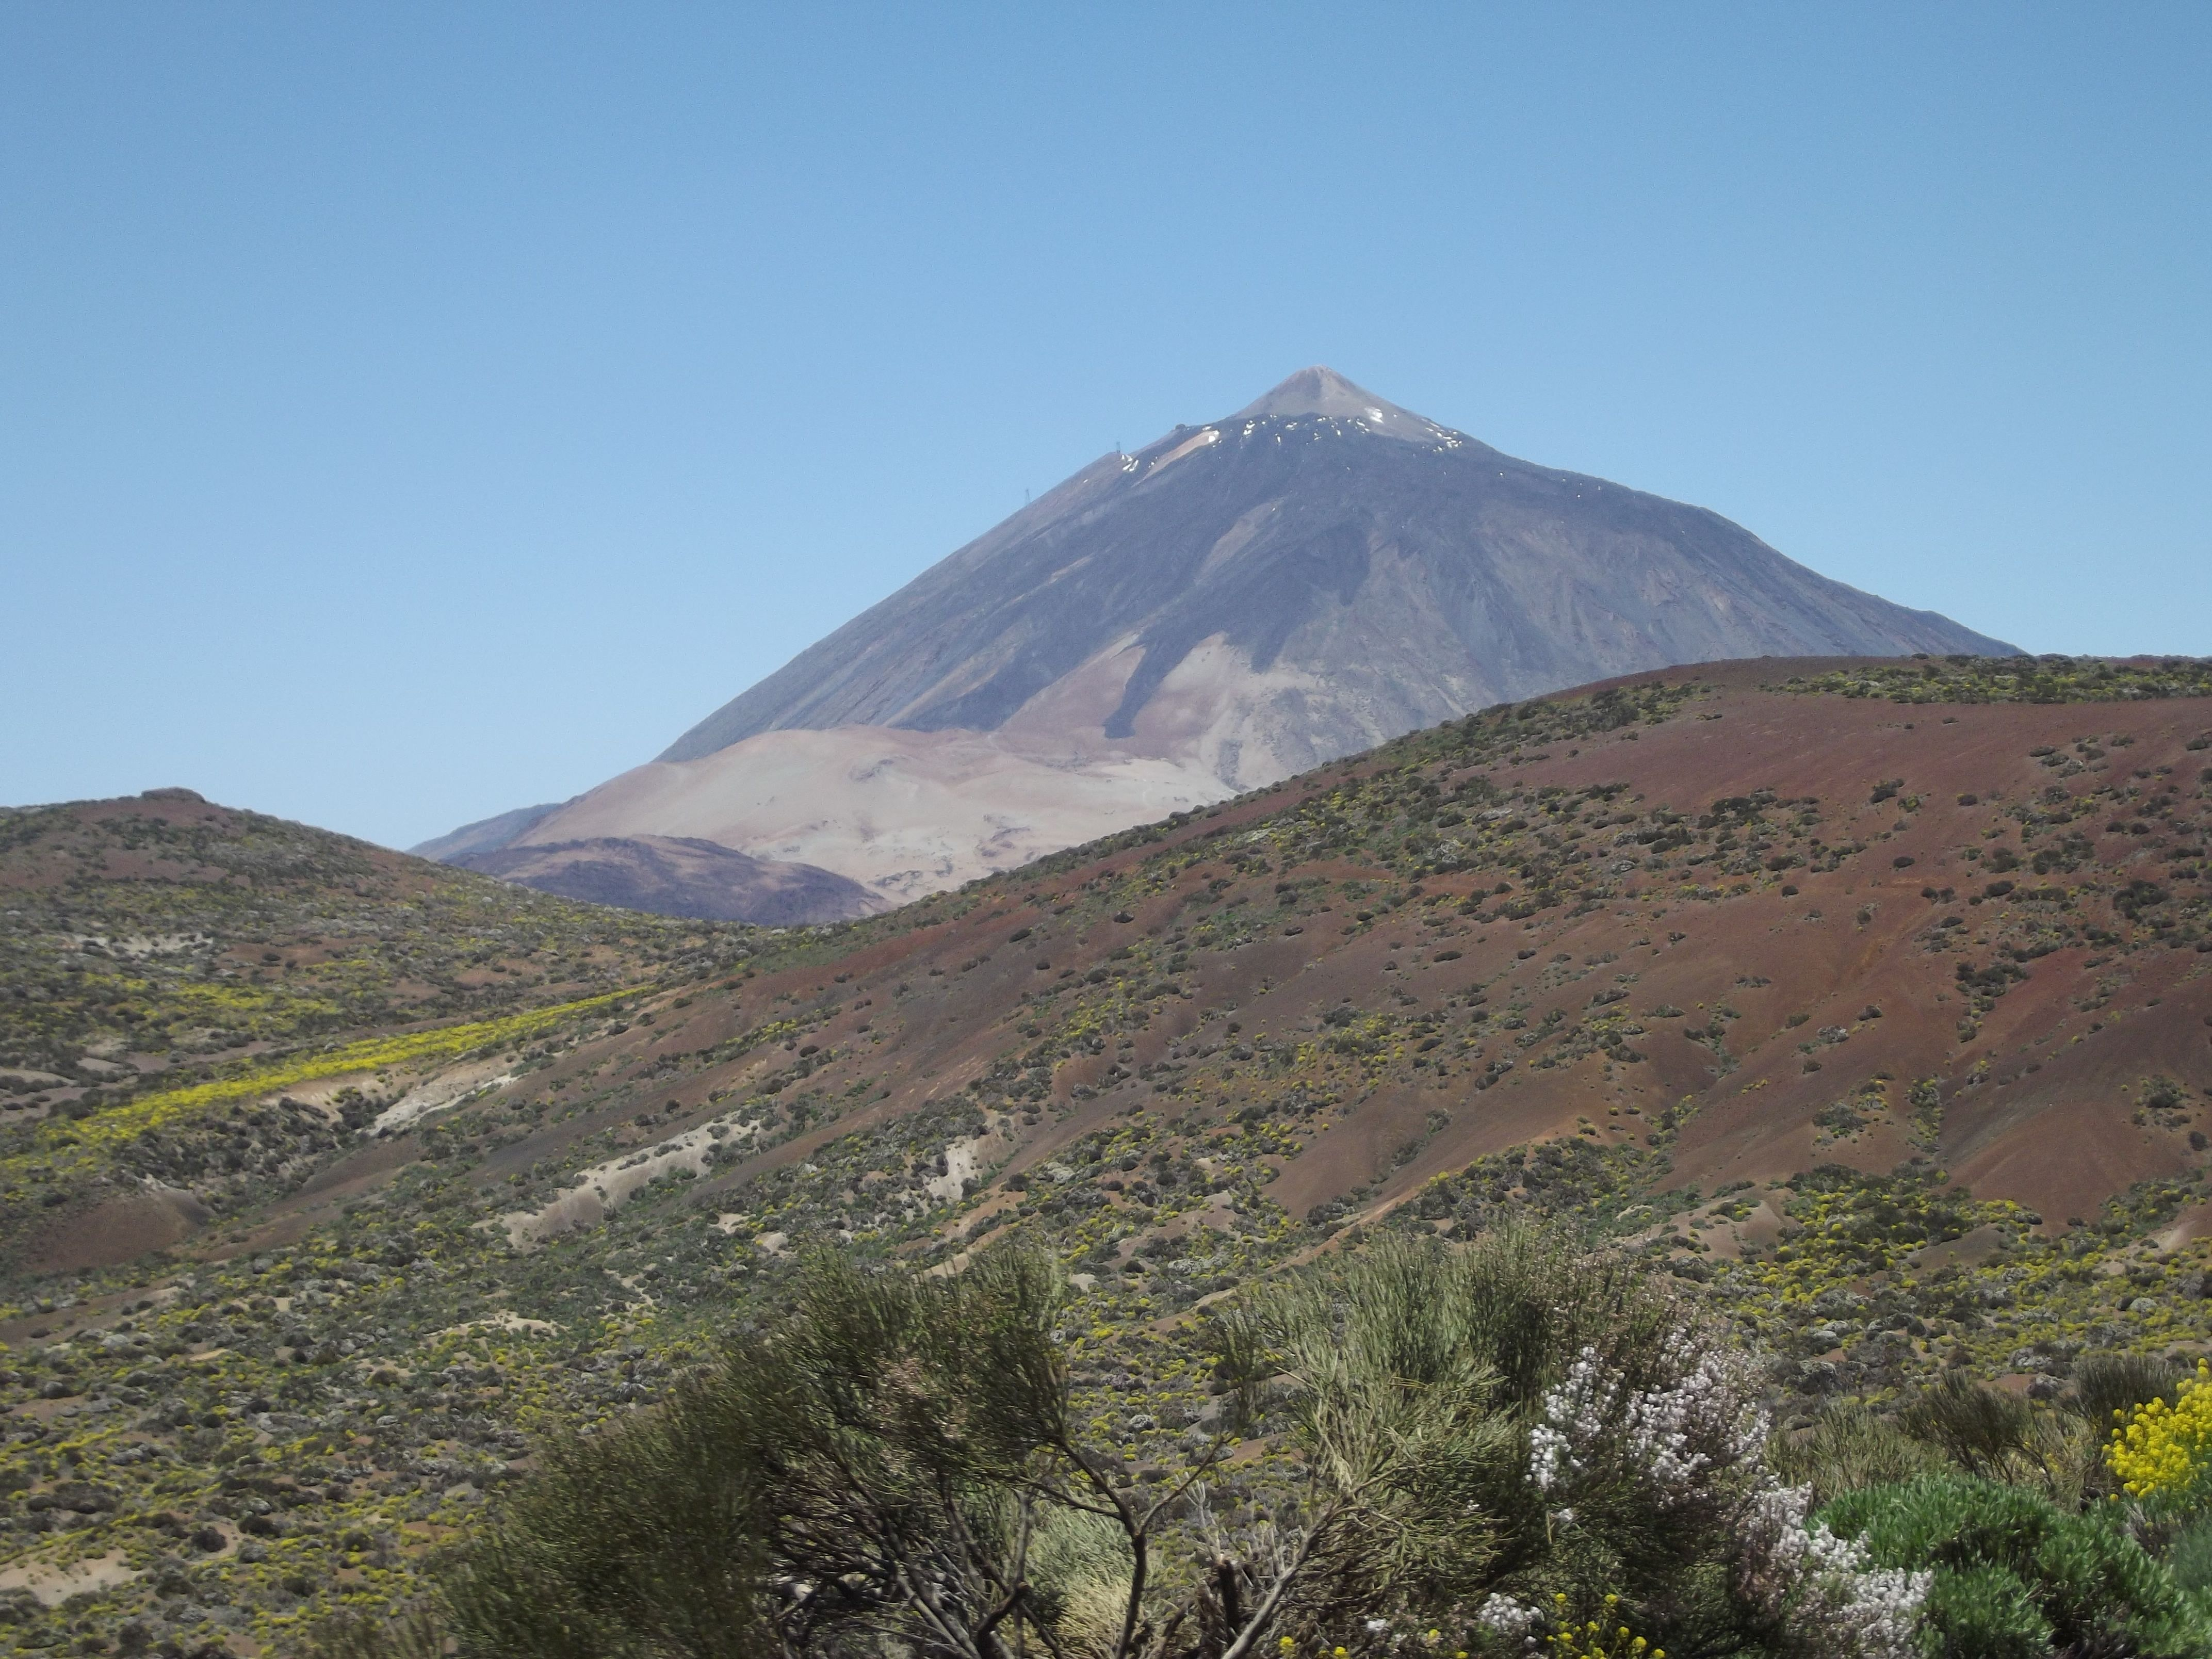 Mount Teide Is A Volcano On Tenerife In The Canary Islands Its 3 718 Metre Summit Is The Highest Point In Spain And The Highes Tenerife Canary Islands Volcano